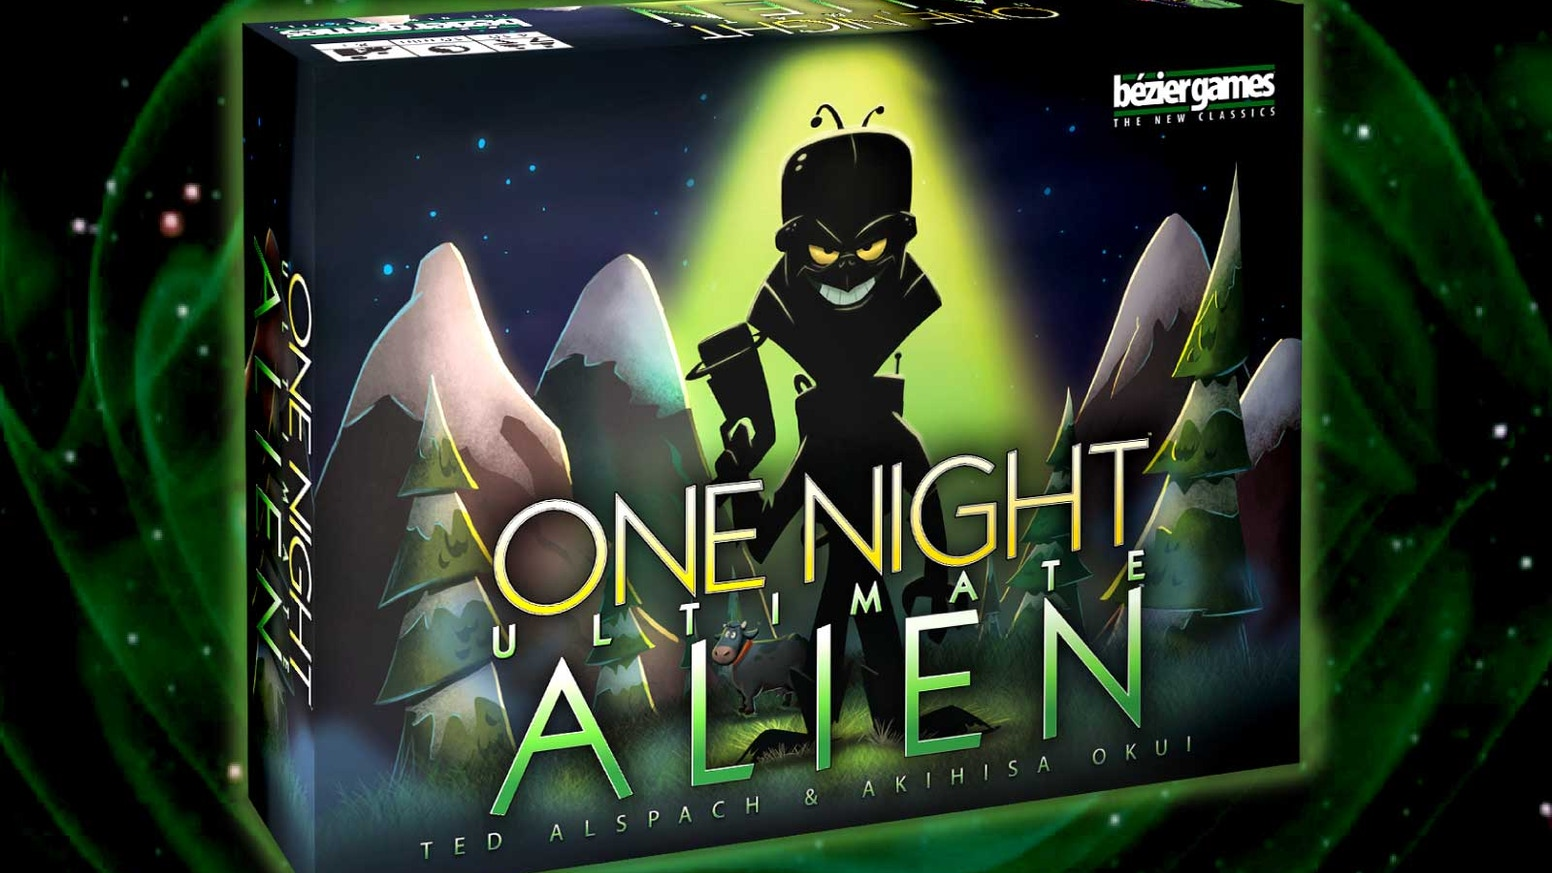 The far-out sequel to the mega-popular One Night Ultimate Werewolf. This time, the app is the star with dynamic roles and narration!